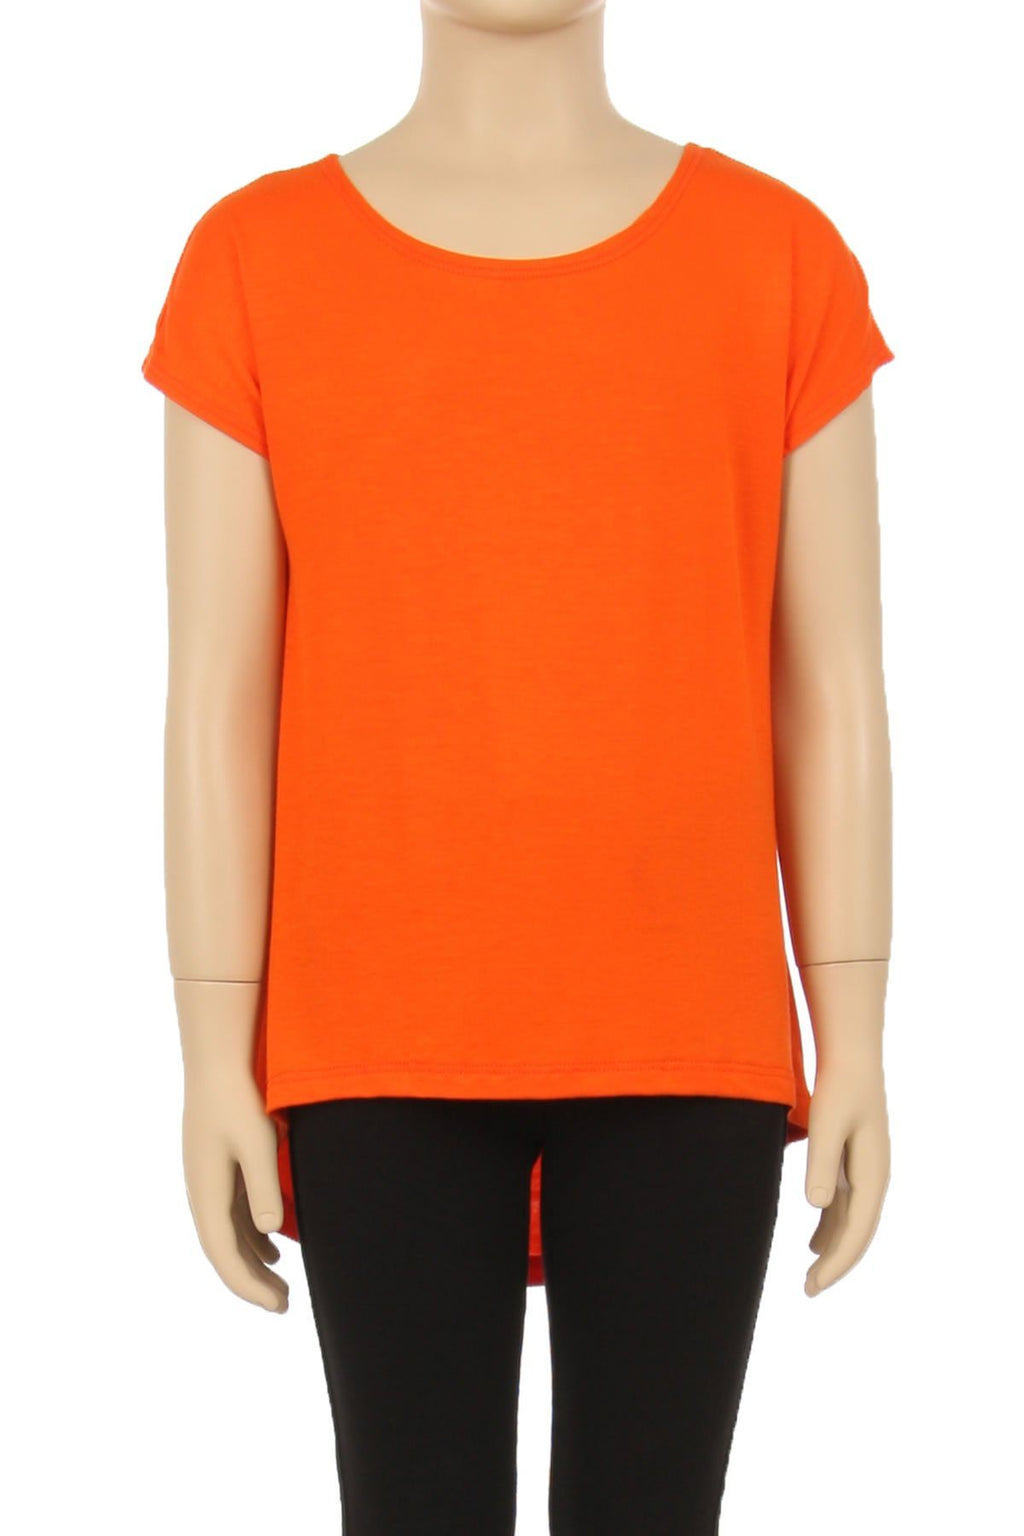 Orange Solid Top For Girls Short Sleeve Shirt: 6/8/10/12 - MomMe and More Matching Mommy and Me Clothing